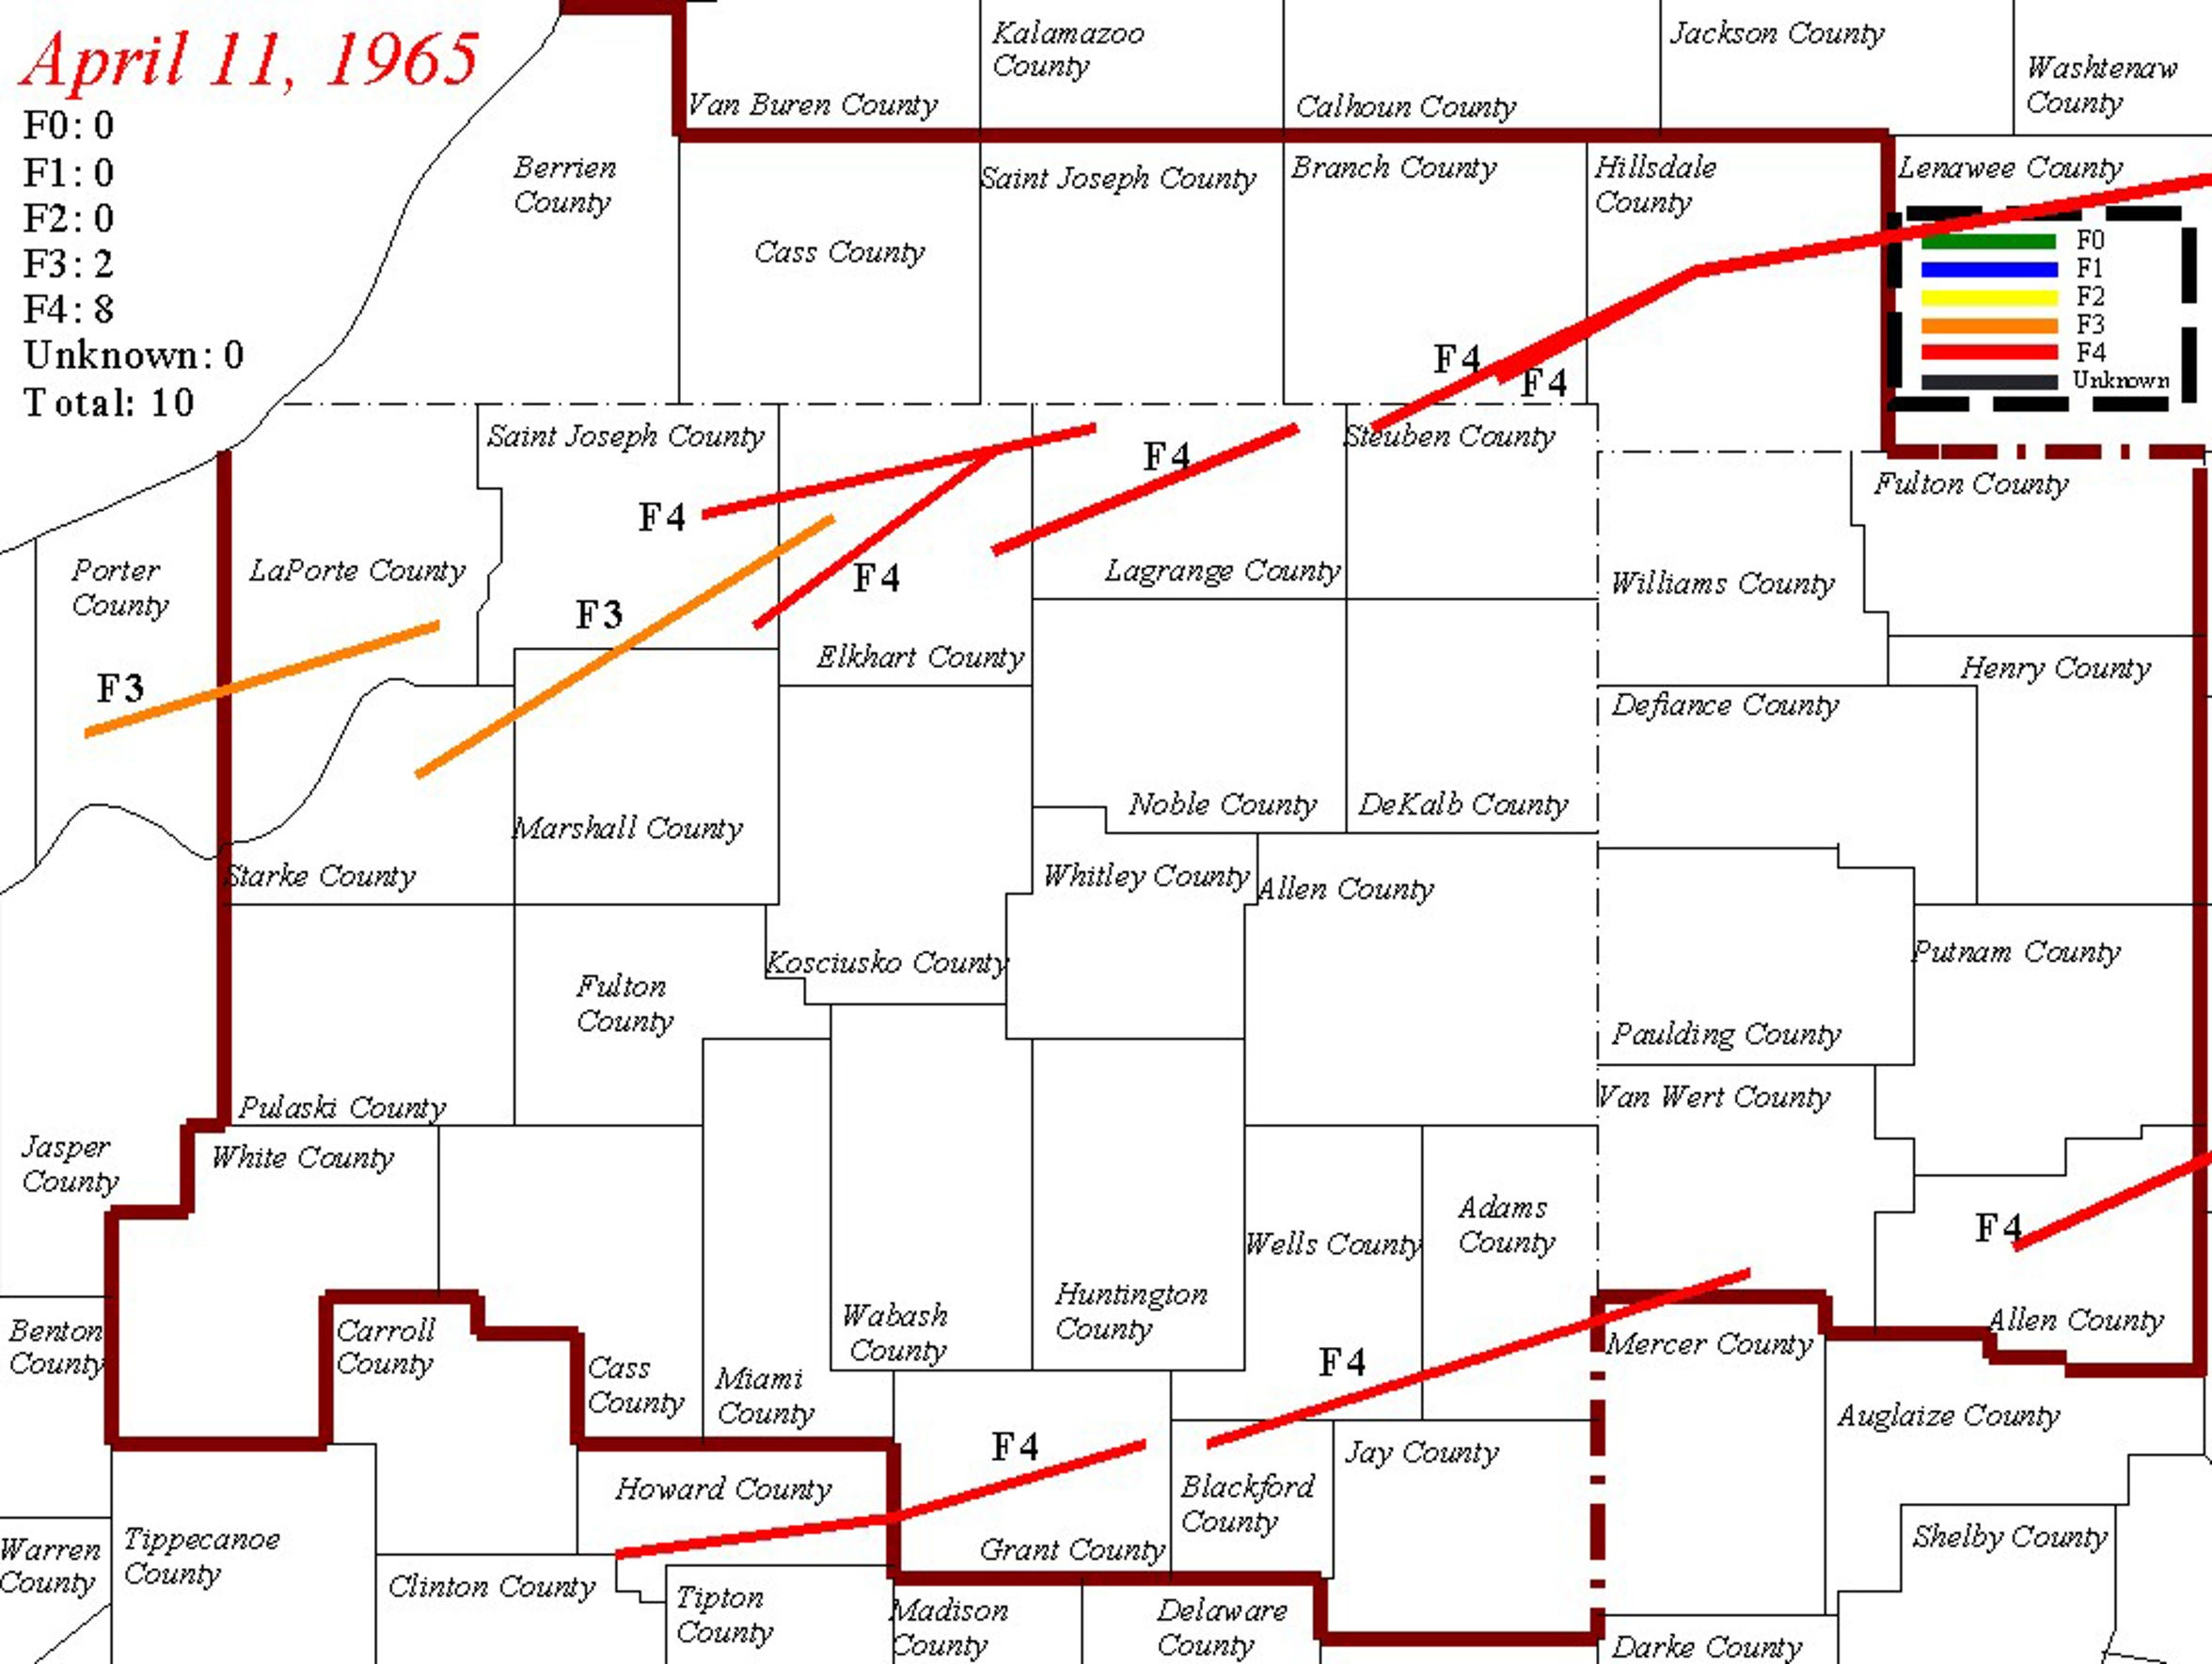 Map of tornado tracks from the 1965 Palm Sunday tornado